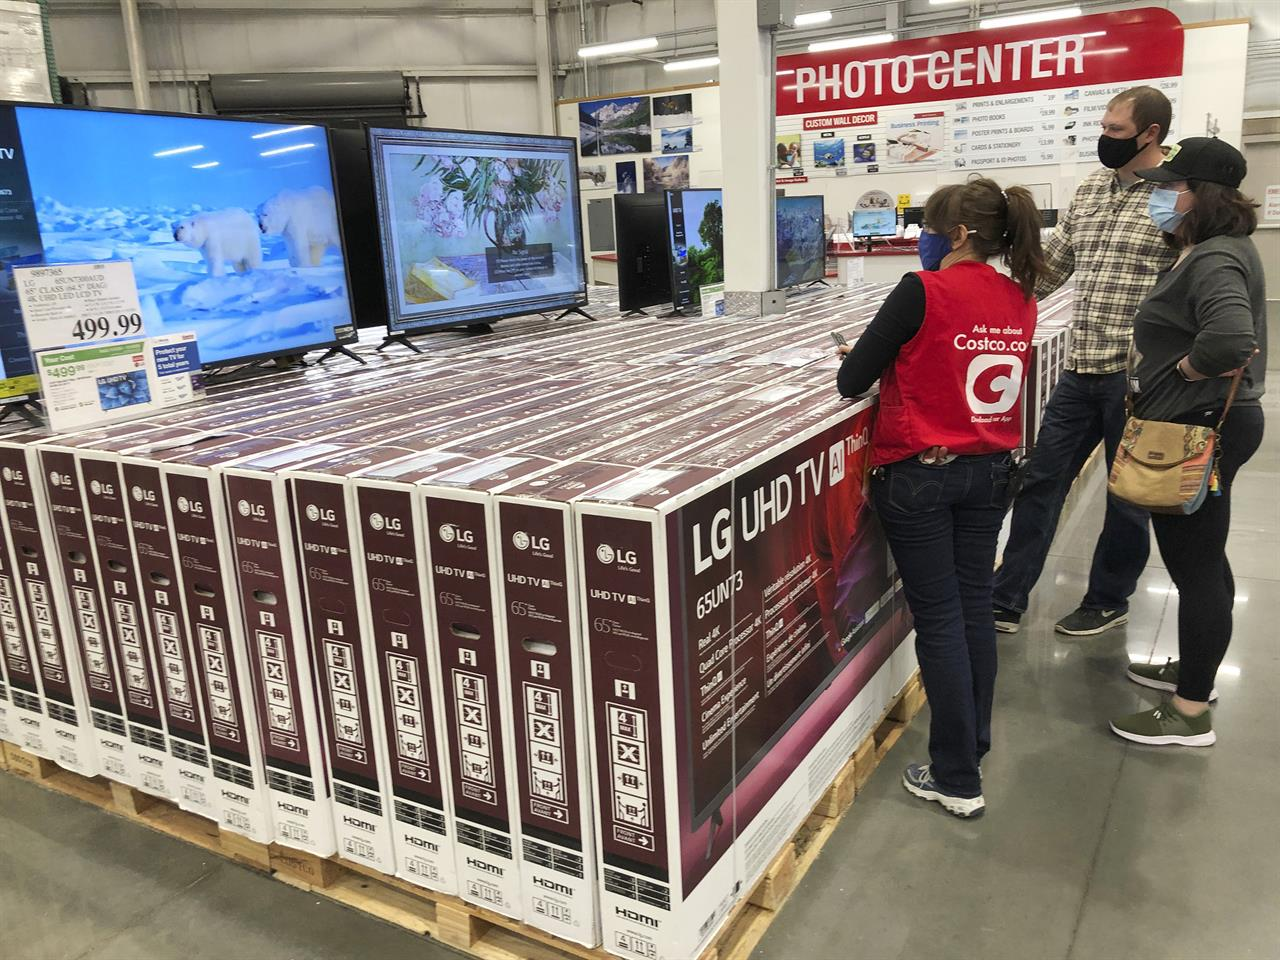 A sales associate helps customers as they consider the purchase of a big-screen television at a Costco warehouse on Wednesday, Nov. 18, 2020, in Sheridan, Colo.  U.S. consumer confidence fell to a reading of 96.1 in November as rising coronavirus cases pushed Americans' confidence down to the lowest level since August. The Conference Board said the November reading represented a drop from a revised 101.4 in October.  (AP Photo/David Zalubowski)